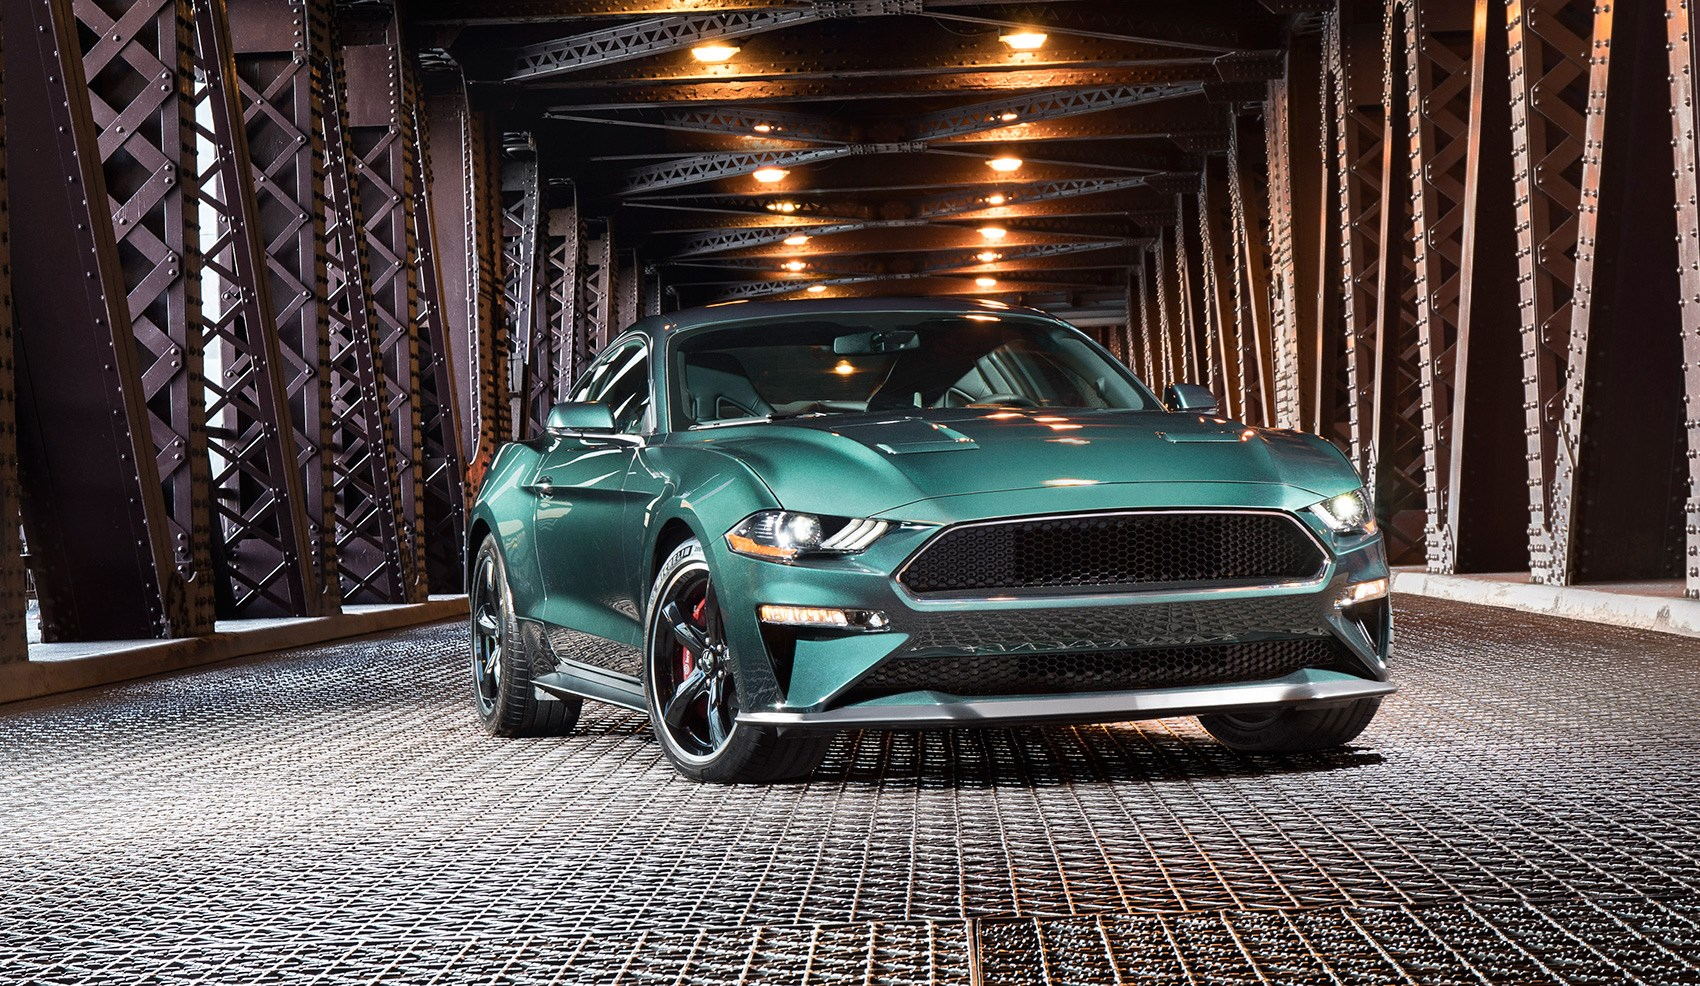 New Ford Mustang 2019 Convertible Coupe Ford Uk >> Ford Mustang Bullitt Uk Price Revealed Car Magazine